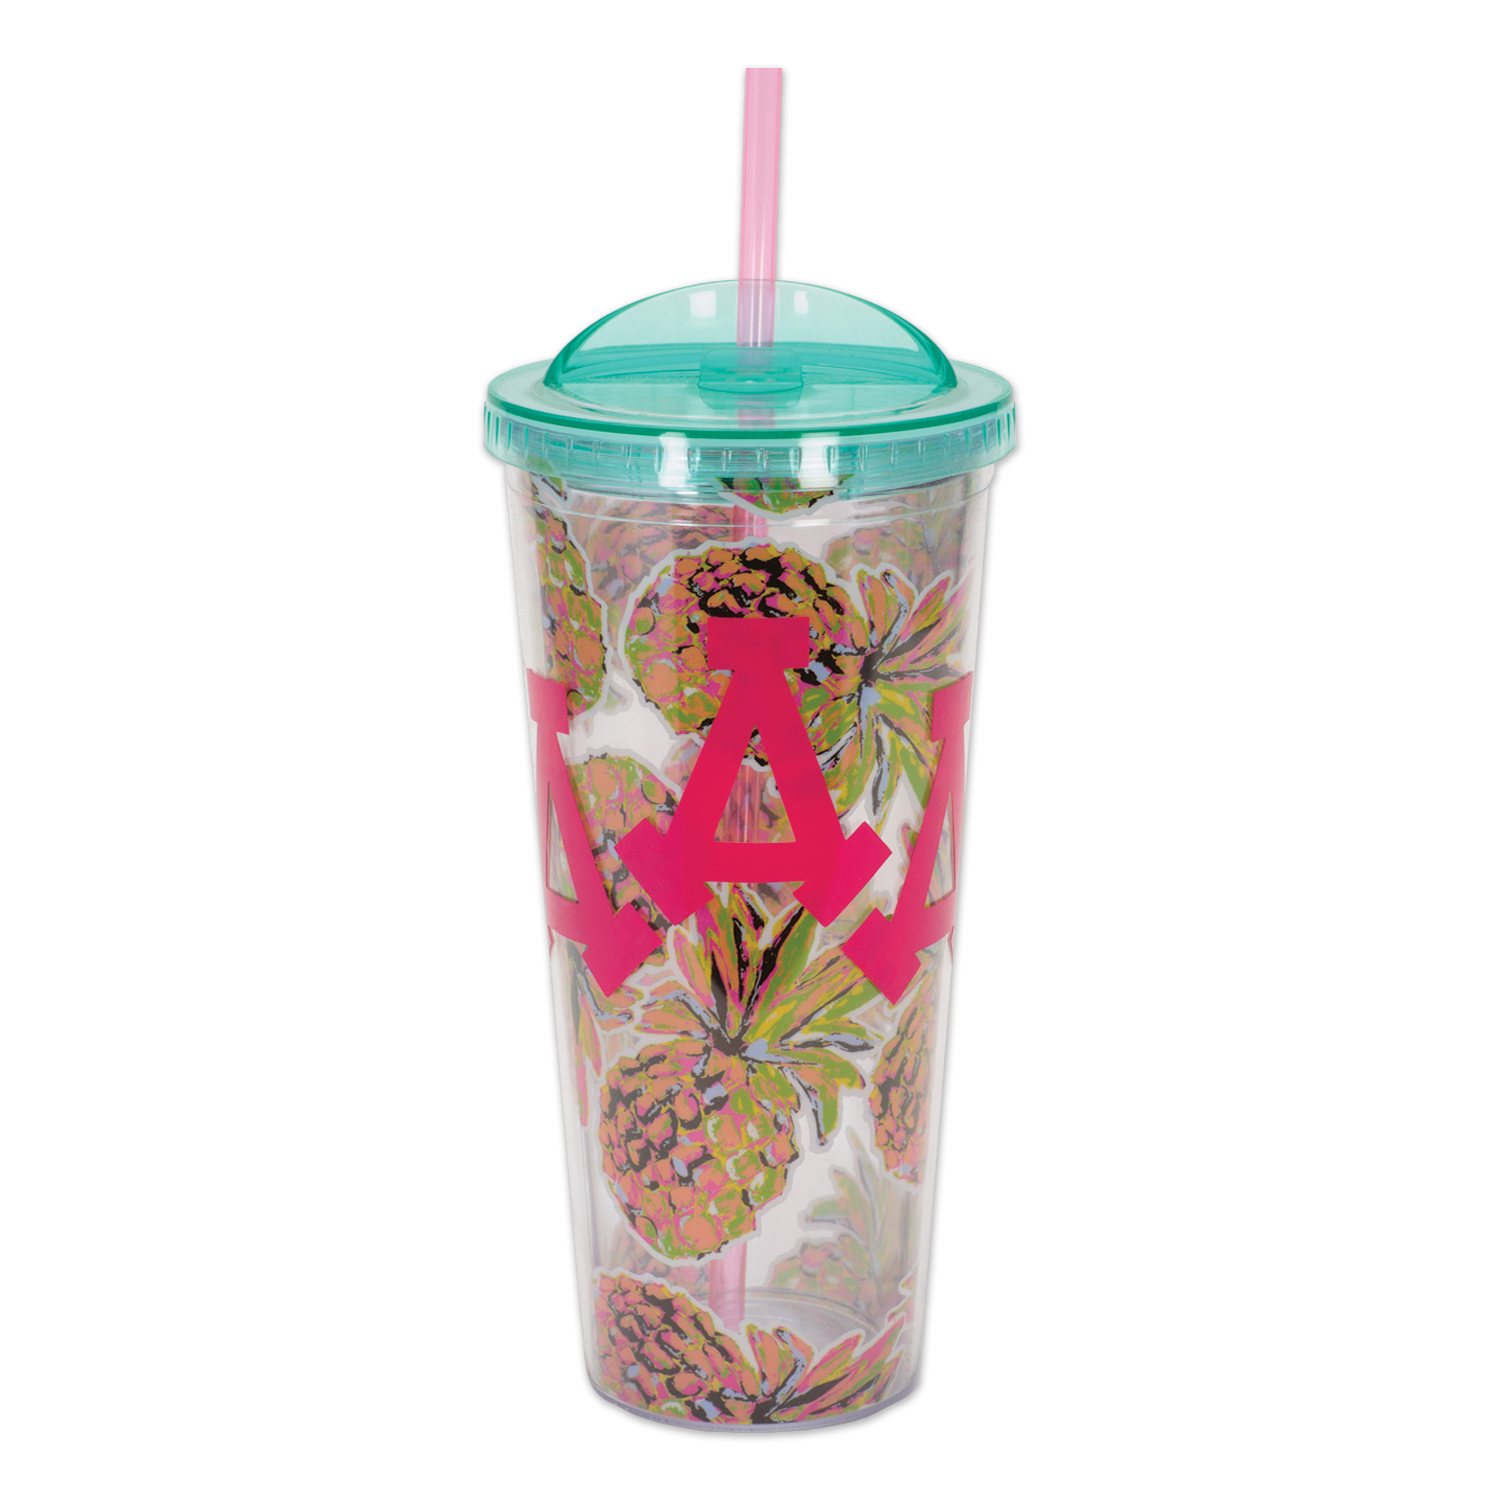 Transparent decals plastic cup. Pineapple printed tumbler with